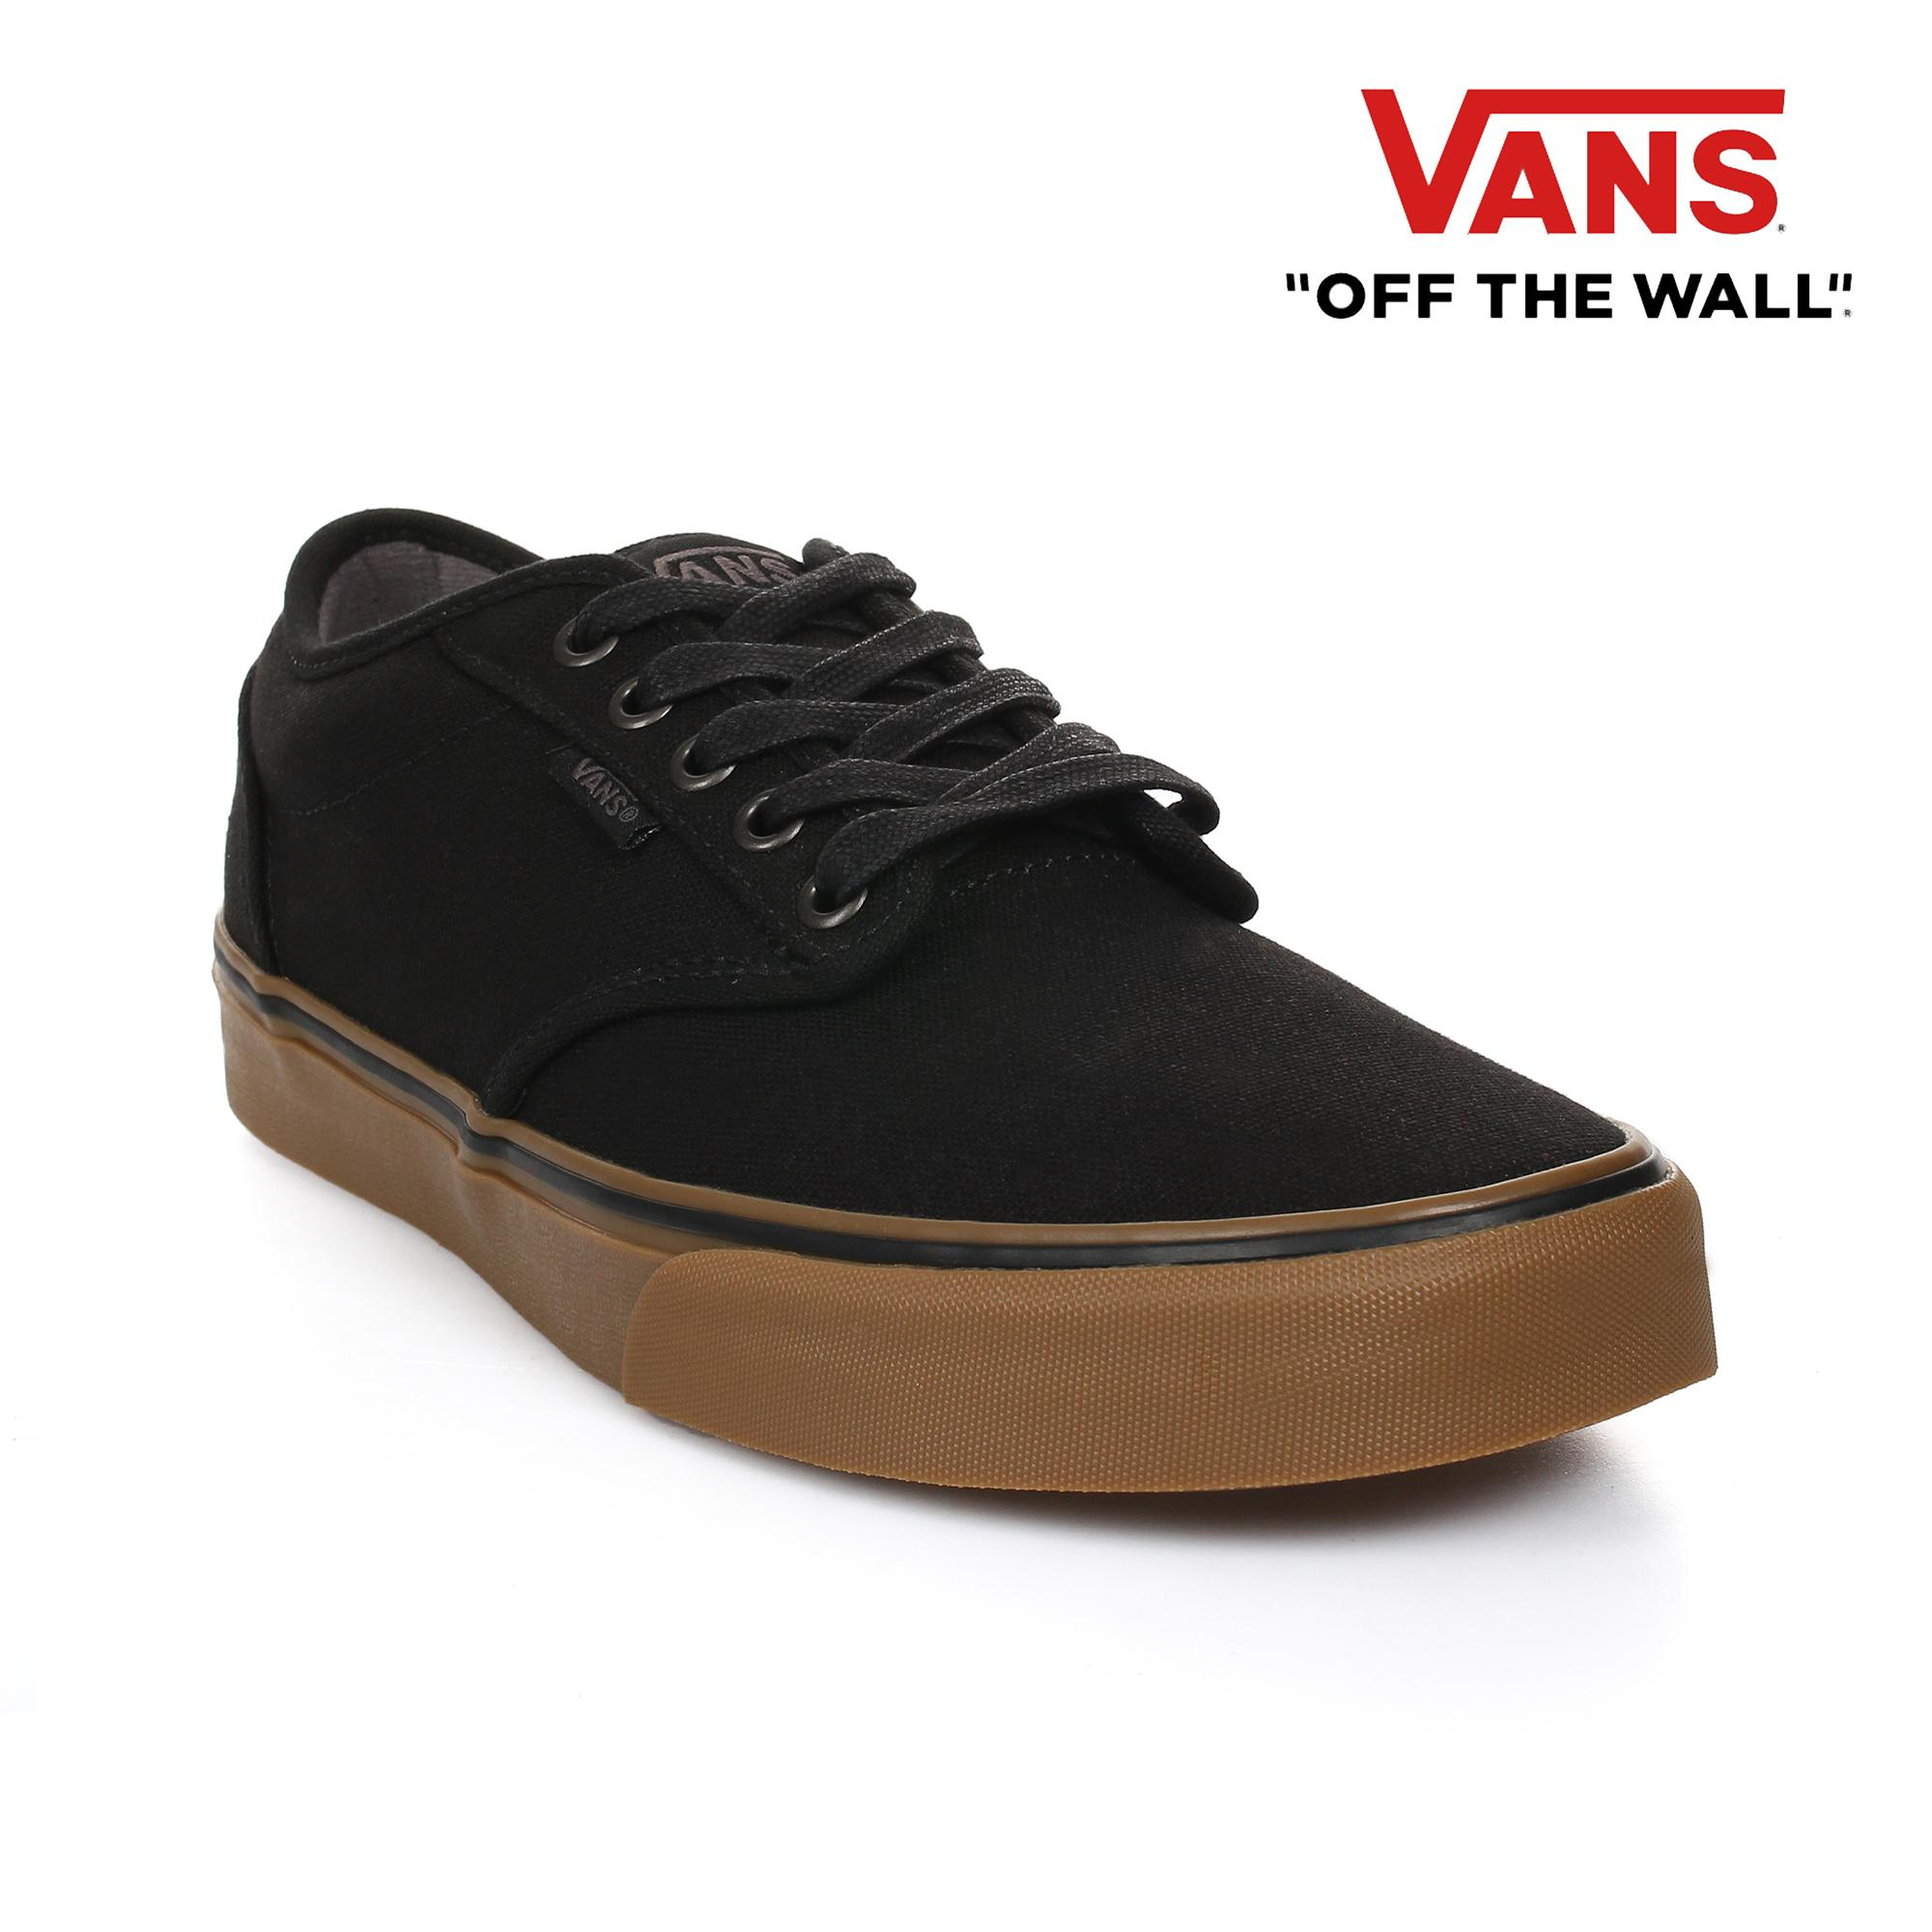 7e787f388c3e Vans Shoes for Men Philippines - Vans Men s Shoes for sale - prices ...